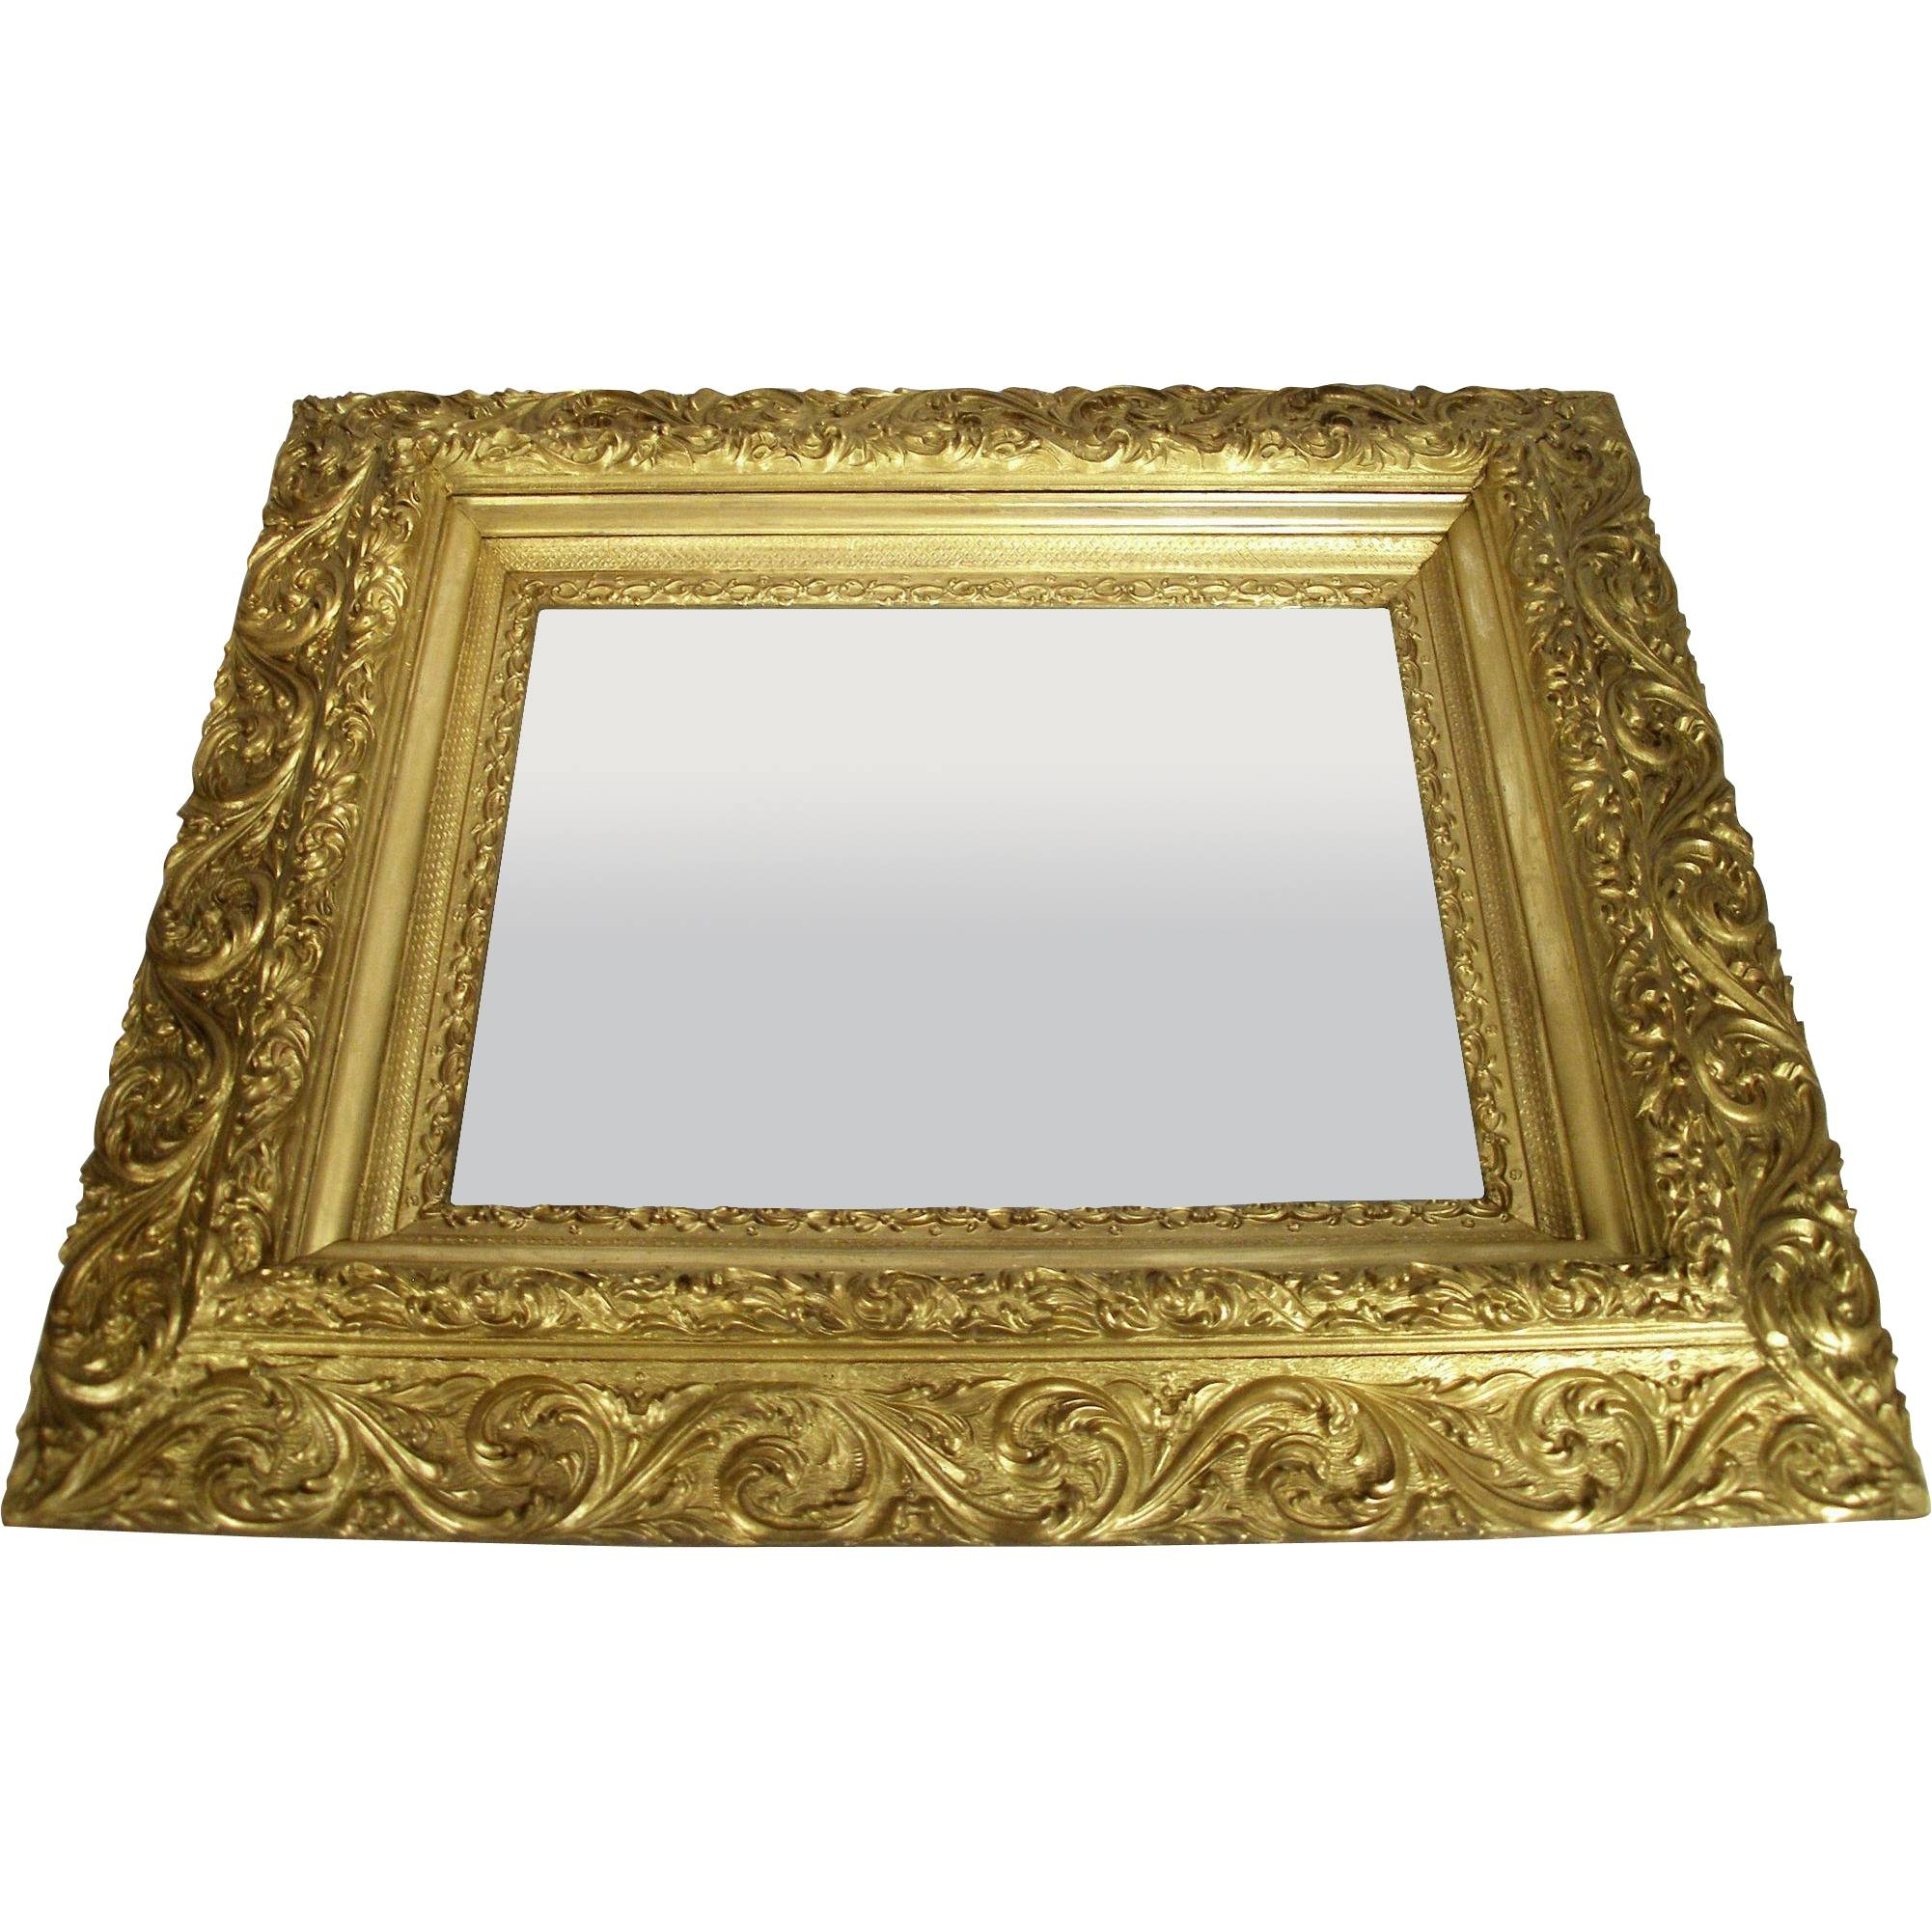 Antique Victorian Art Nouveau Gold Gilt Wood Frame Scroll Foliage with Art Nouveau Wall Mirrors (Image 5 of 25)